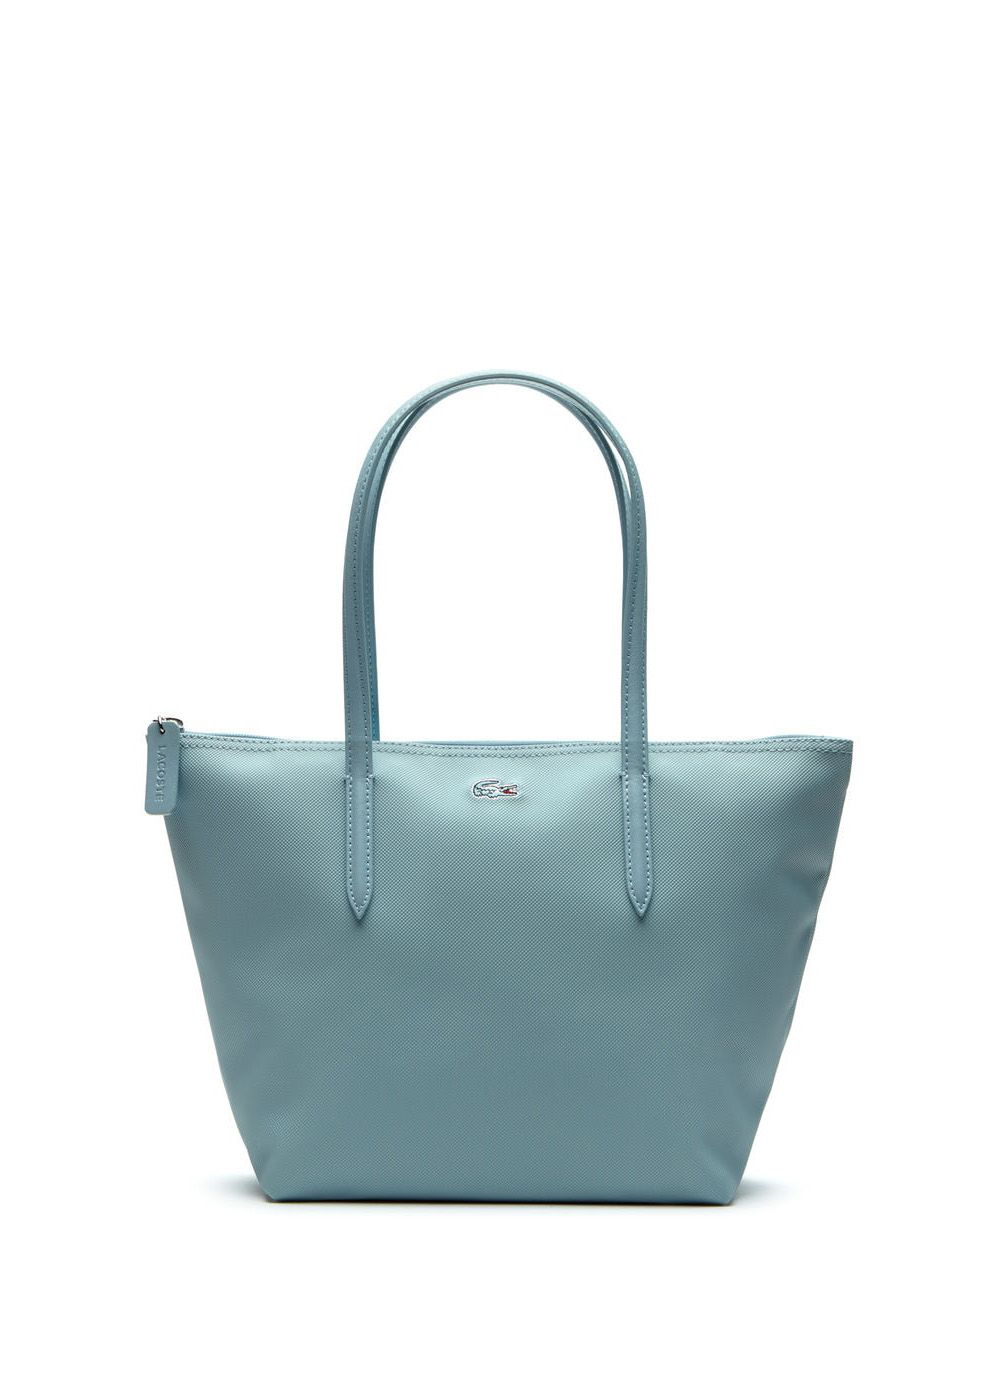 Main Handbag Blue En Sac Femme Lacoste Light WomenAccessoires Yyb76gfv